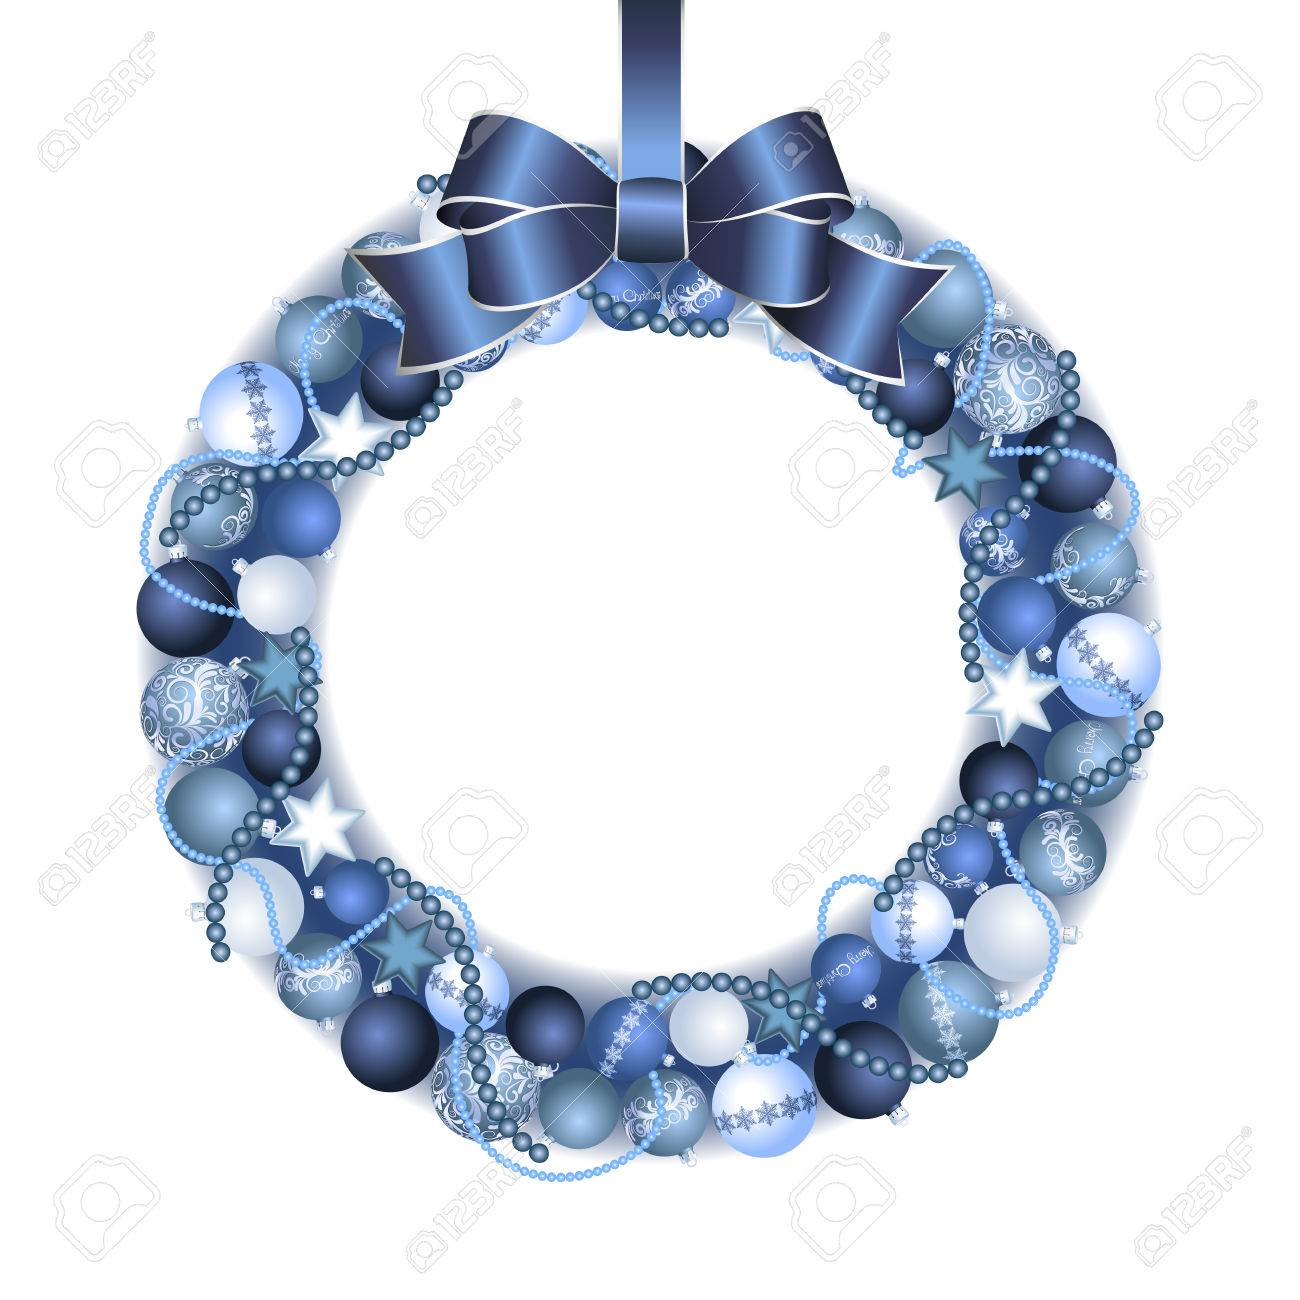 Silver Christmas Wreath.Christmas Wreath Decoration From Blue And Silver Christmas Balls